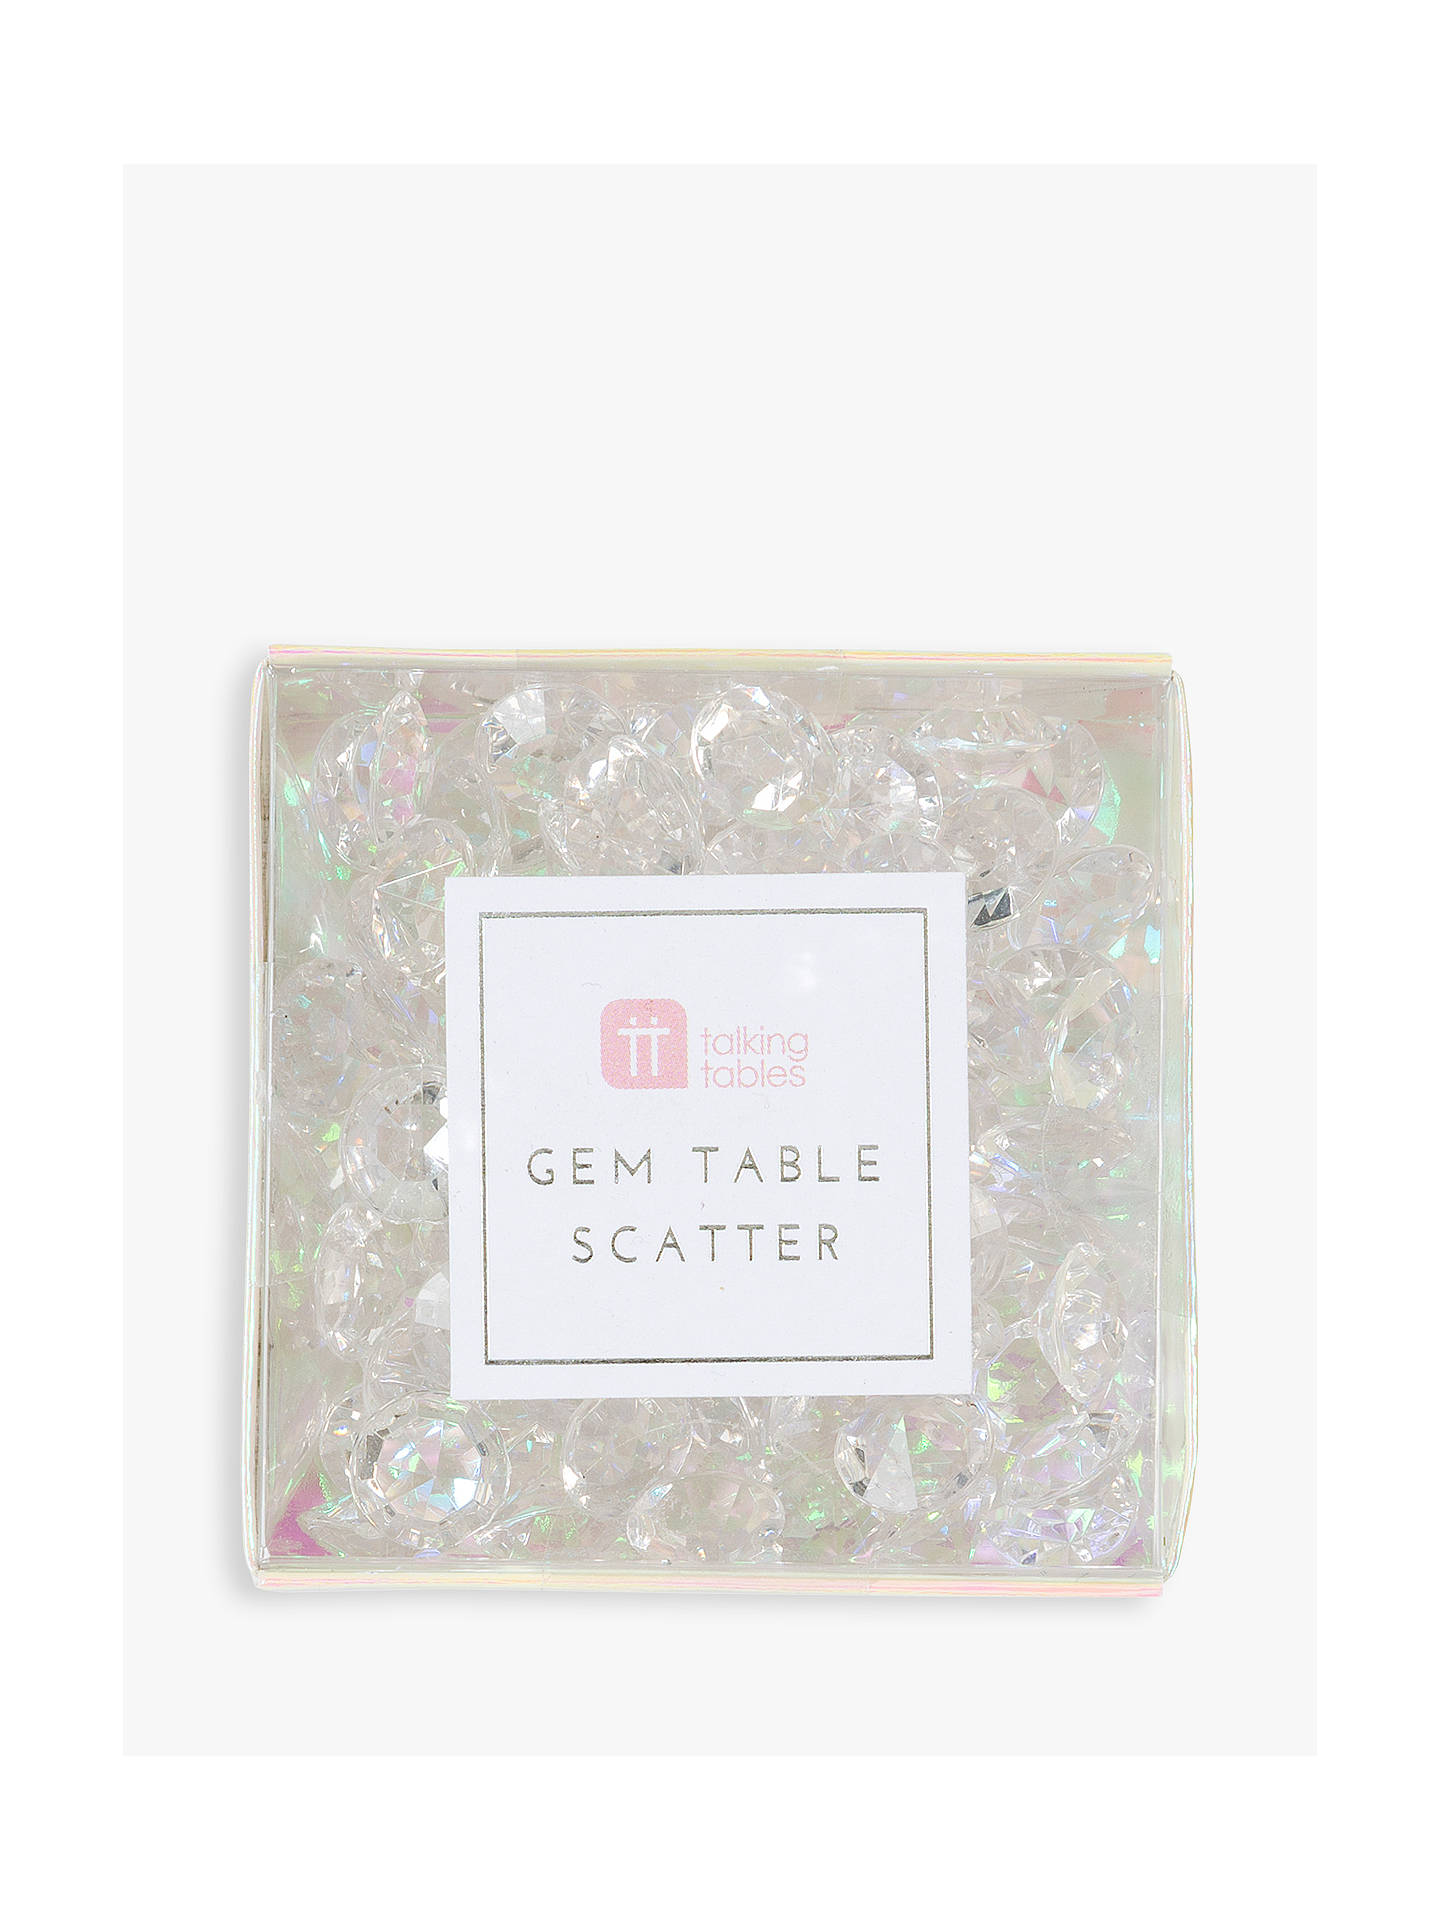 Buy Talking Tables Iridescent Gem Table Scatter Online at johnlewis.com